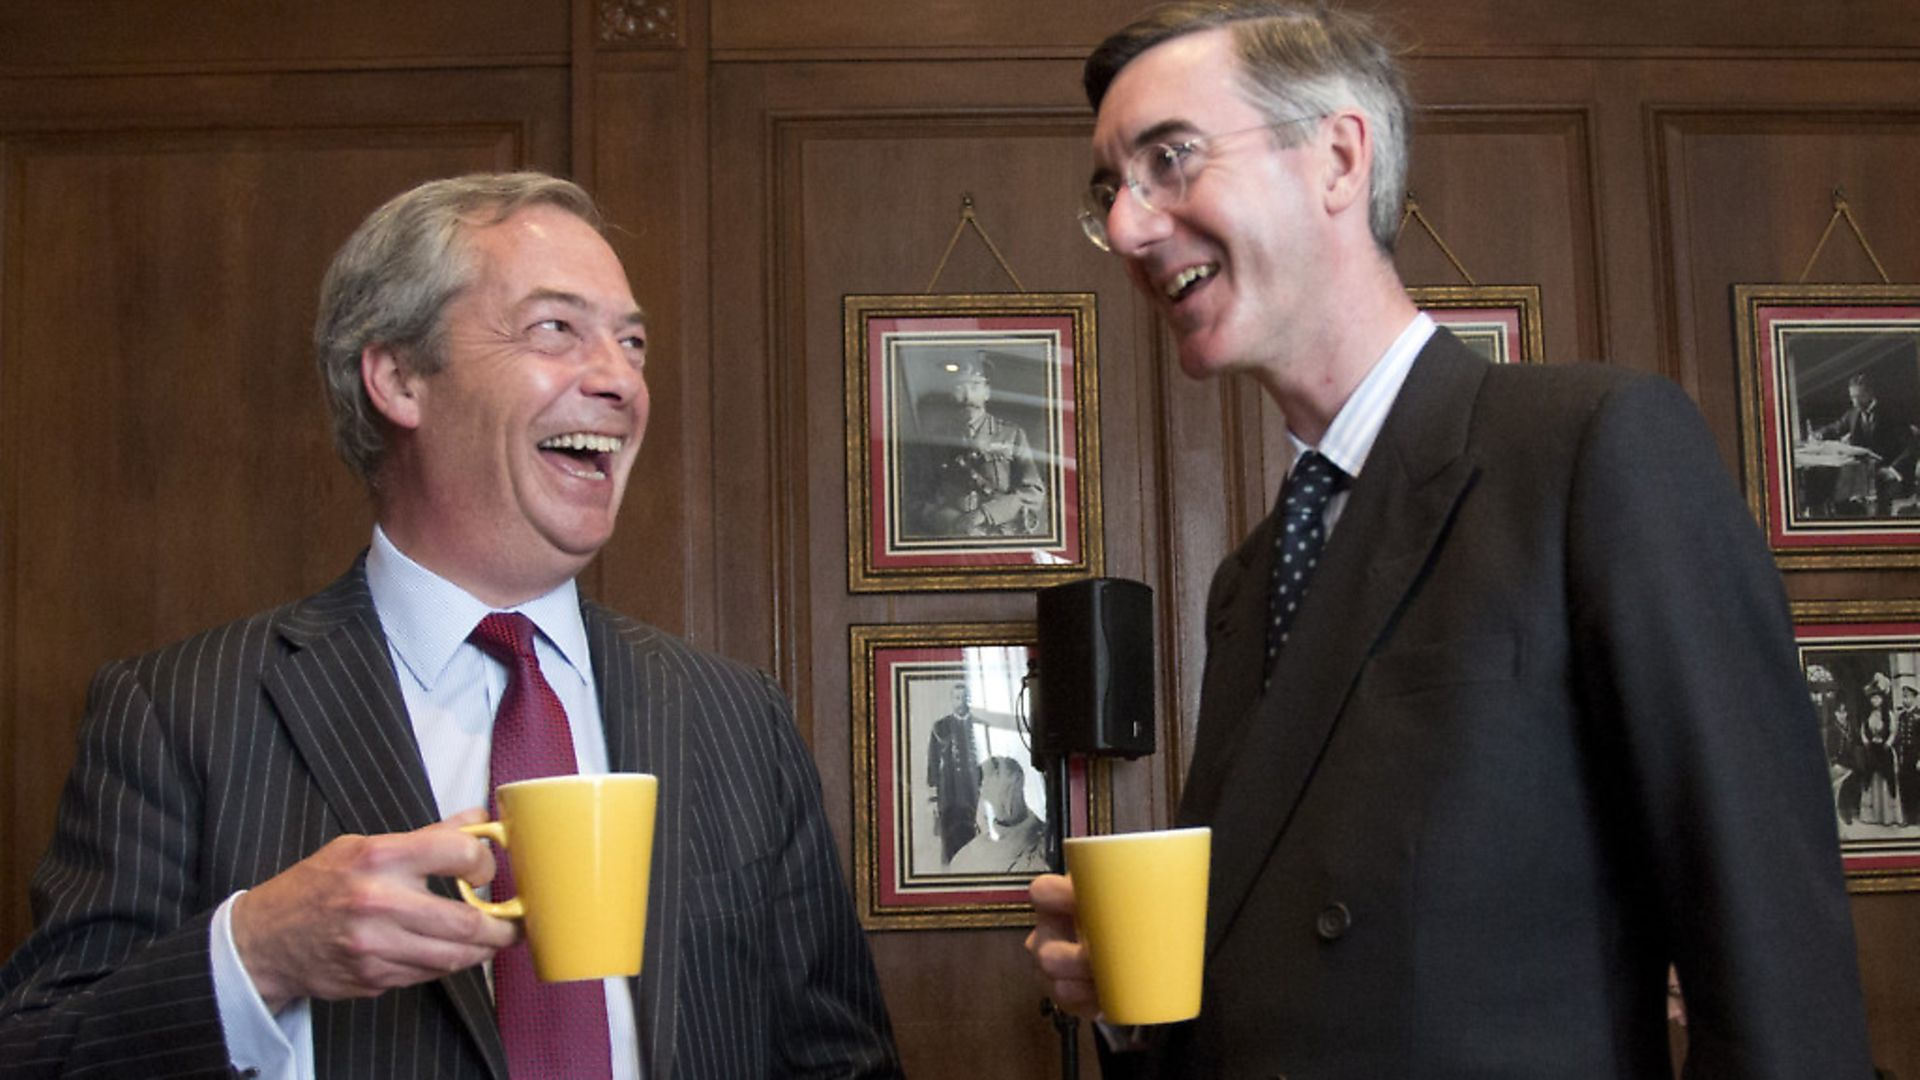 Nigel Farage and Jacob Rees-Mogg are both pushing Brexit. Photograph: Isabel Infates/PA. - Credit: EMPICS Entertainment